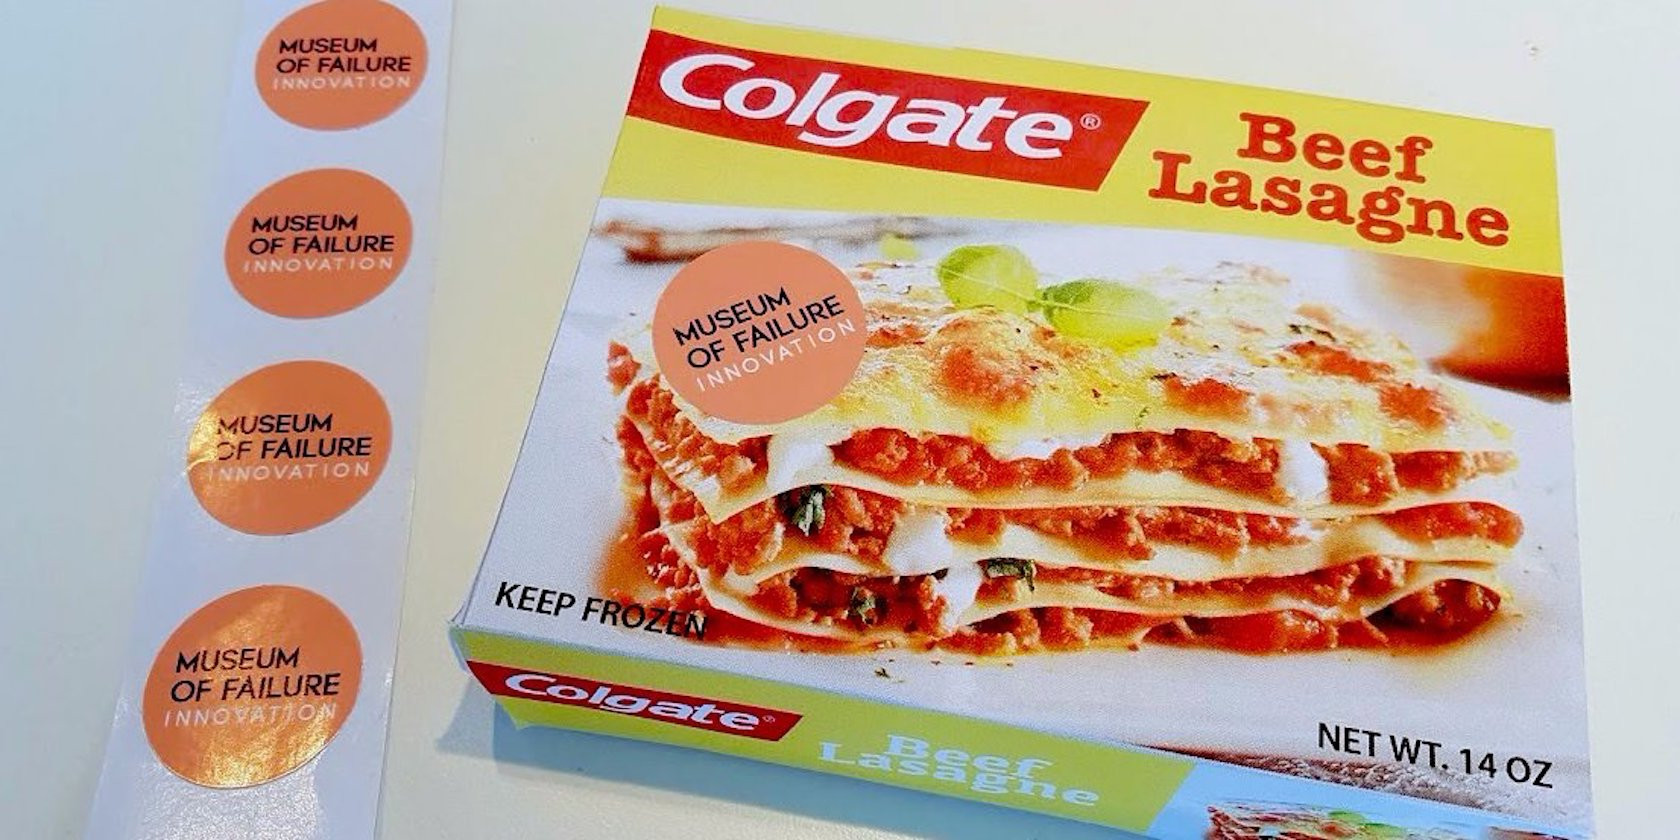 Colgate Beef Lasagna  You Have To See Seoul s Giant New Library